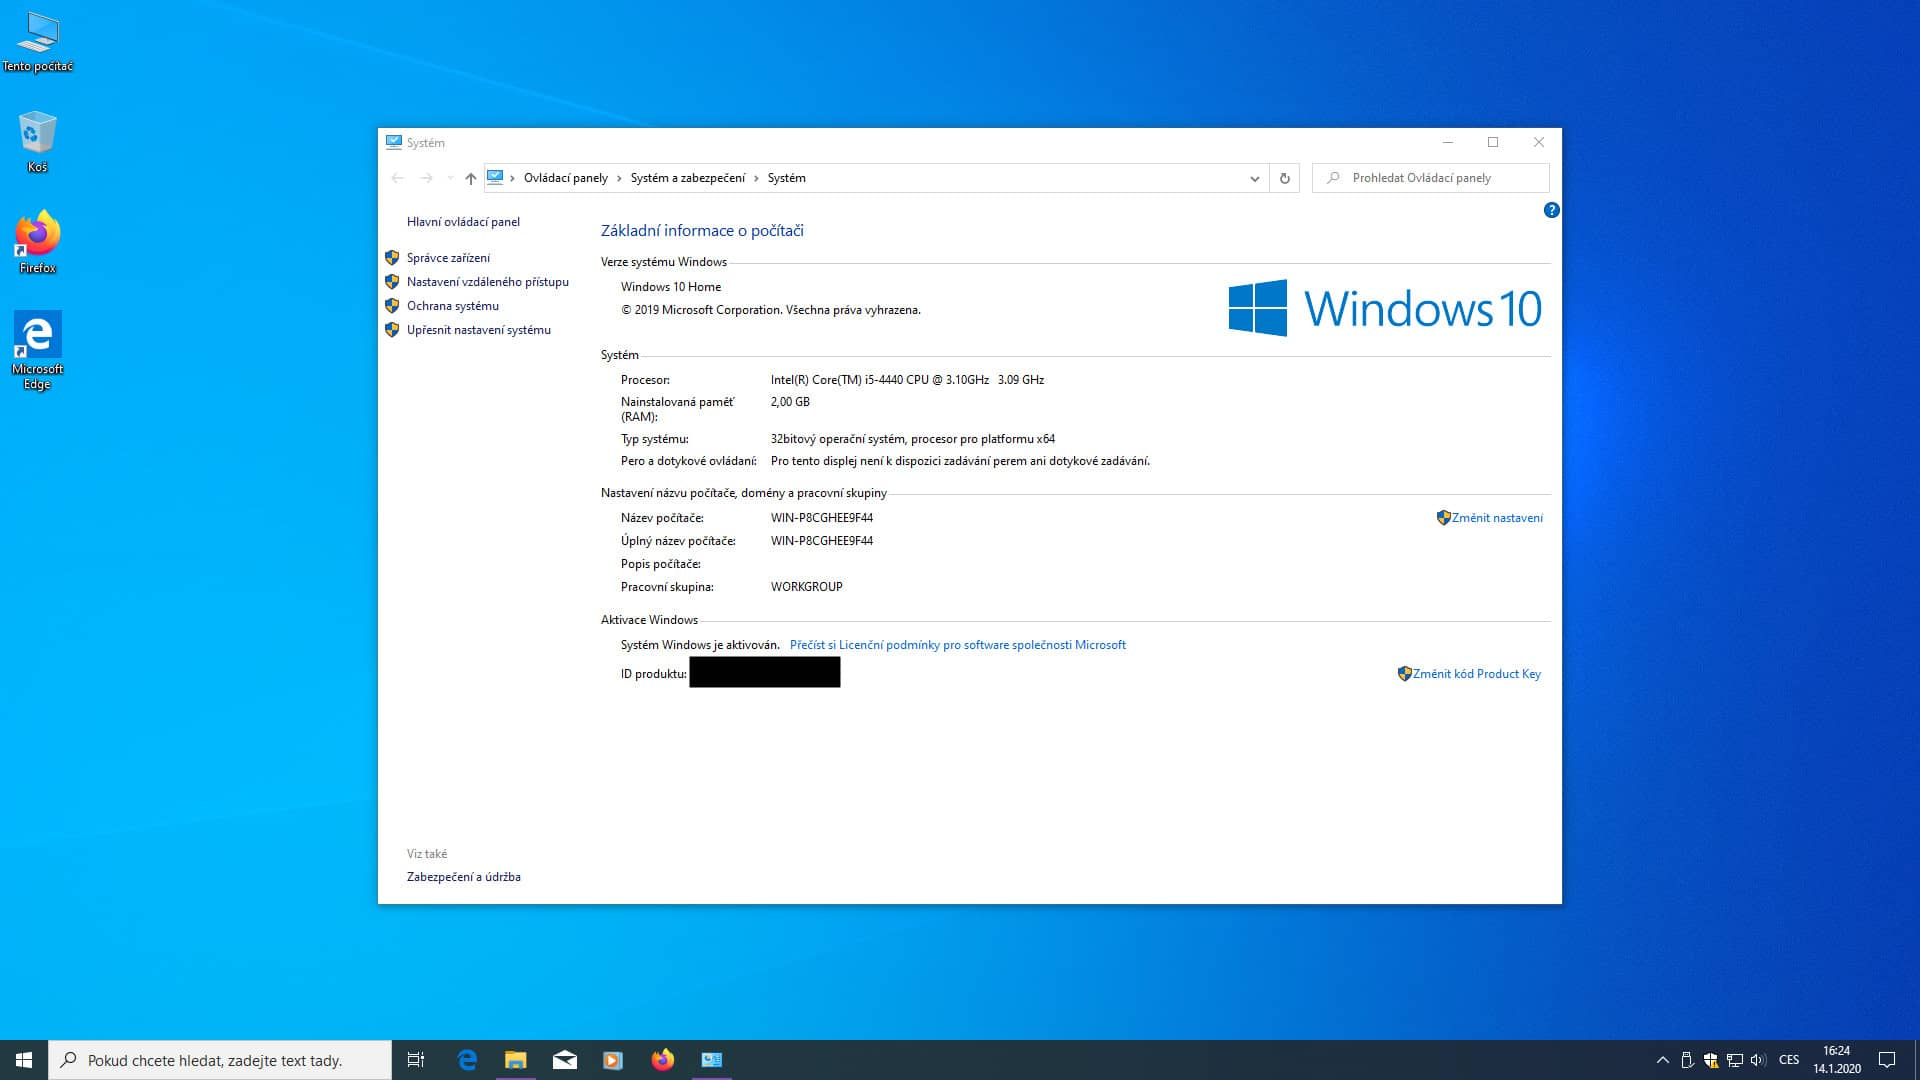 windows 7 bezplatny upgrade windows 10 13